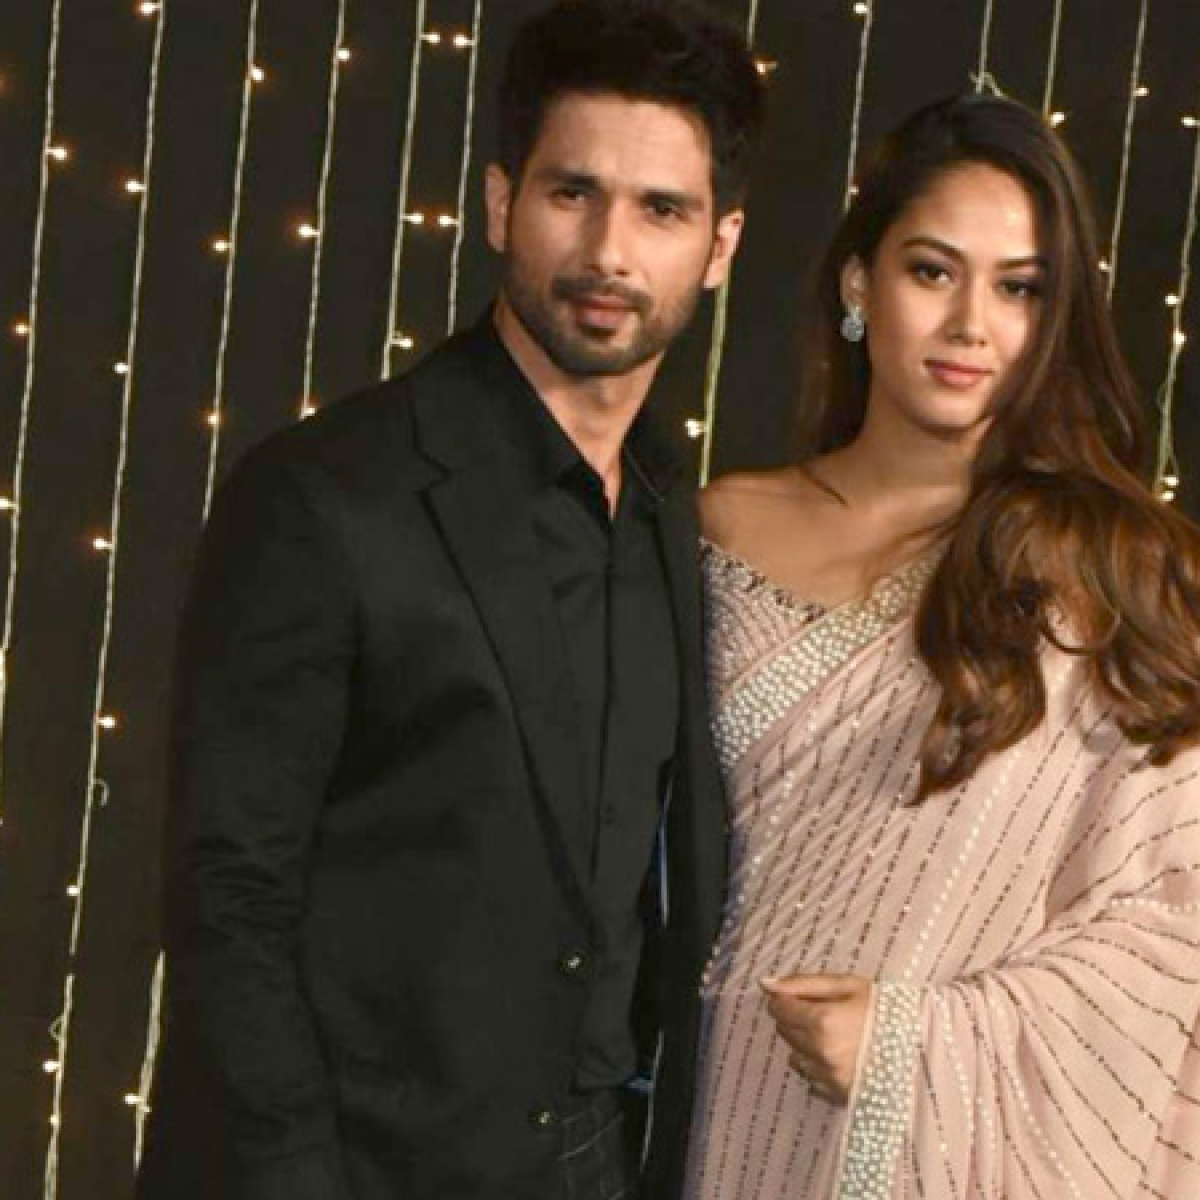 'Split personality is an actual disorder': Shahid Kapoor's wife Mira gets called out for using a mental disorder as a 'pun'